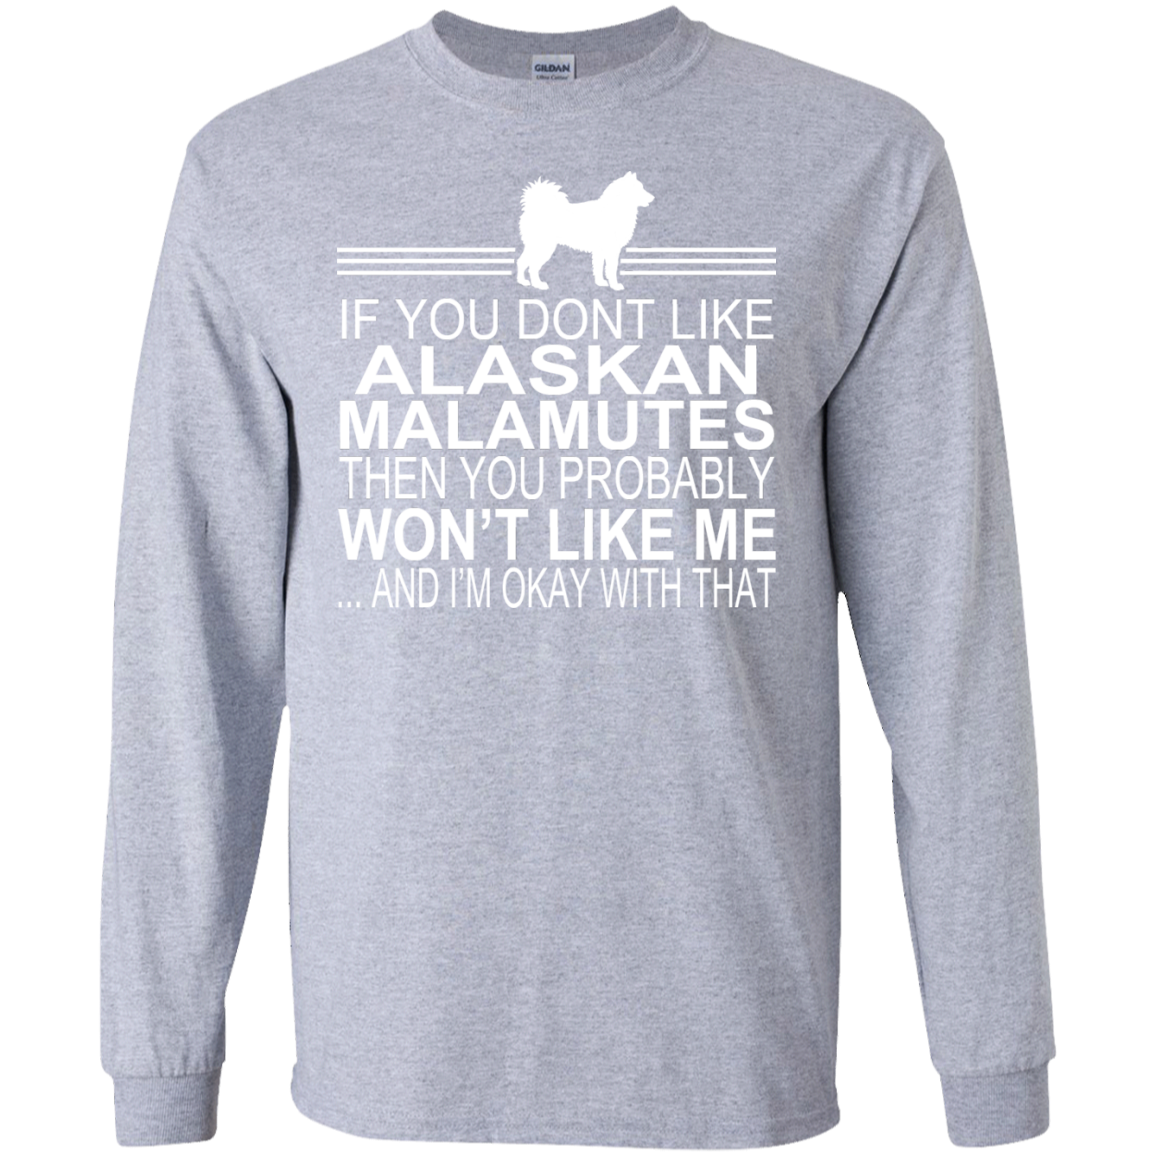 If You Dont Like Alaskan Malamutes Then You Probably Wont Like Me And Im Okay With That Long Sleeve Tees